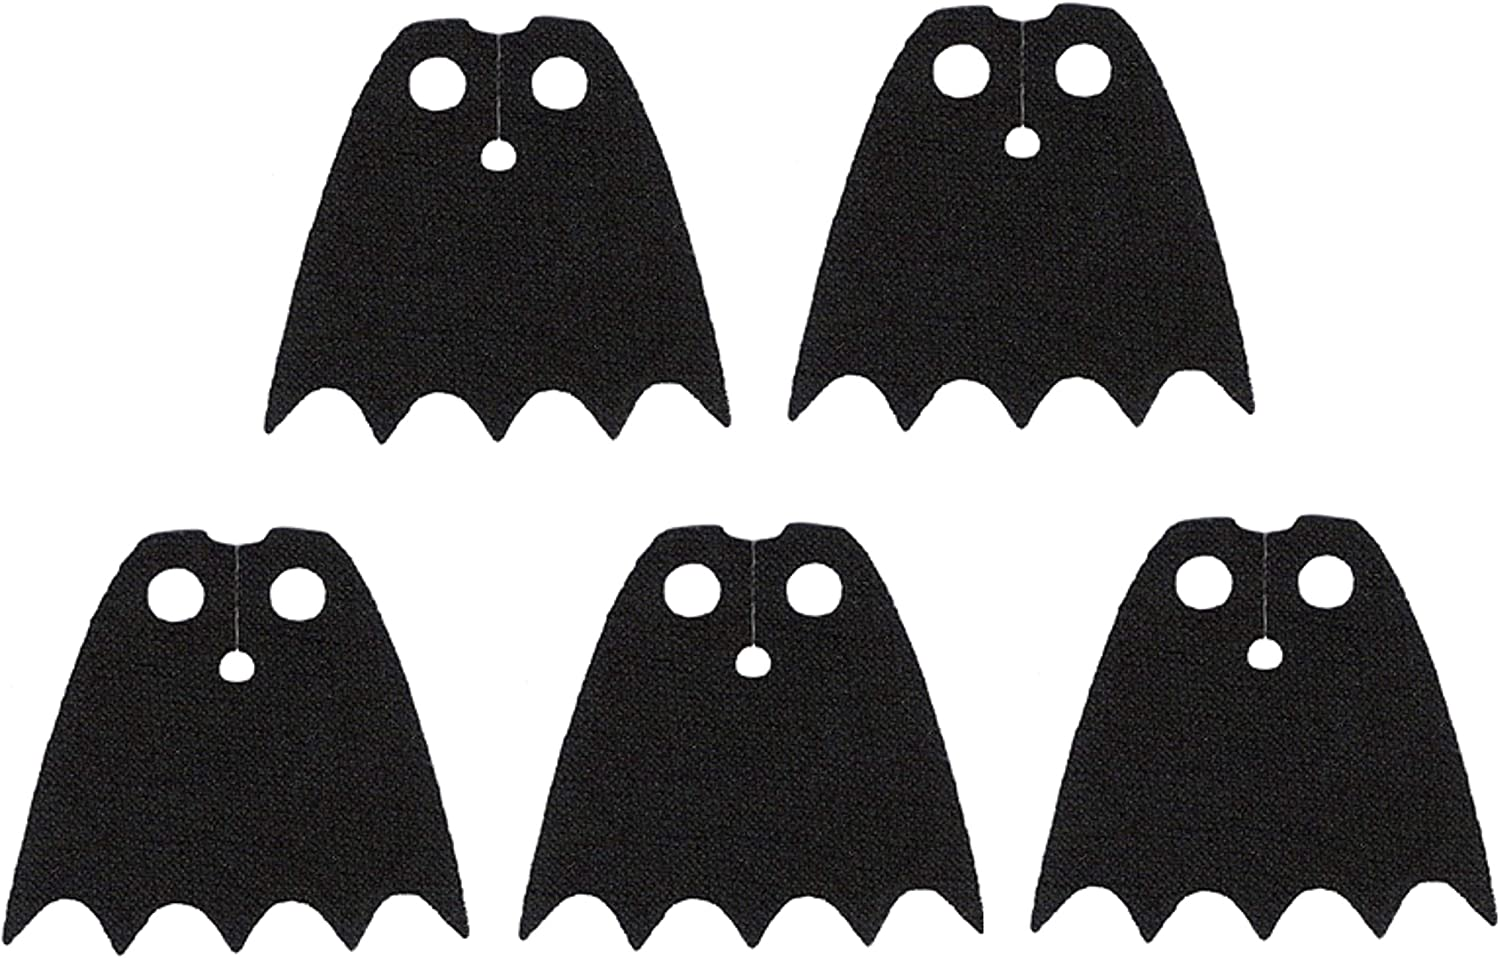 LEGO Star Wars Black Cape Lot of 5 Authentic LEGO® Capes